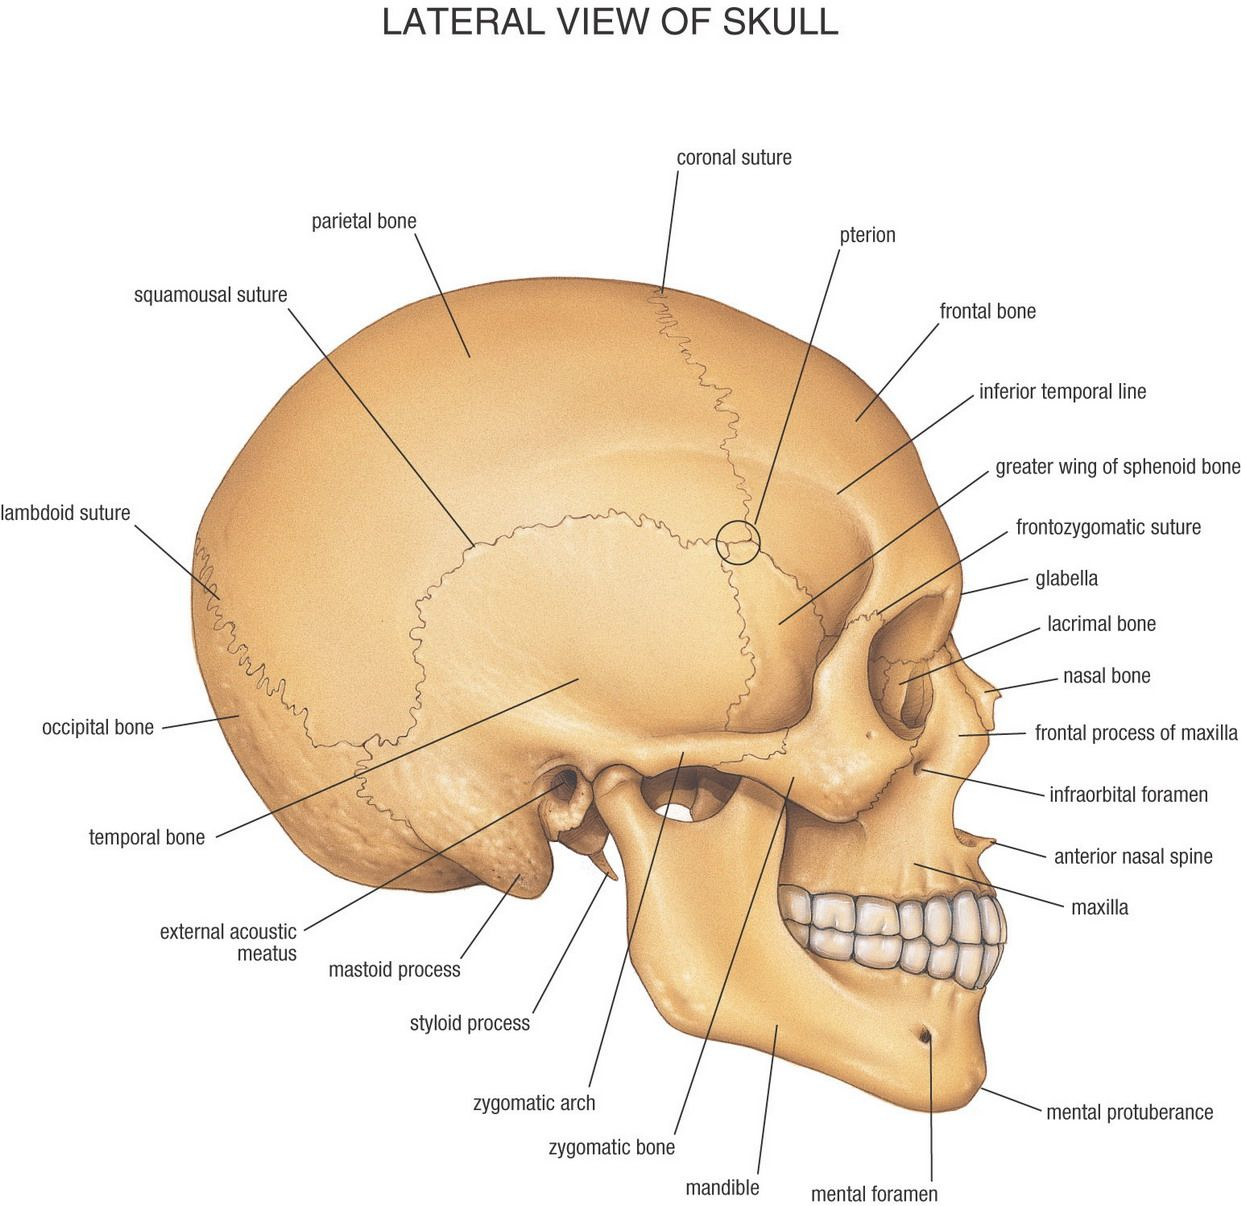 Labeled skull anatomy